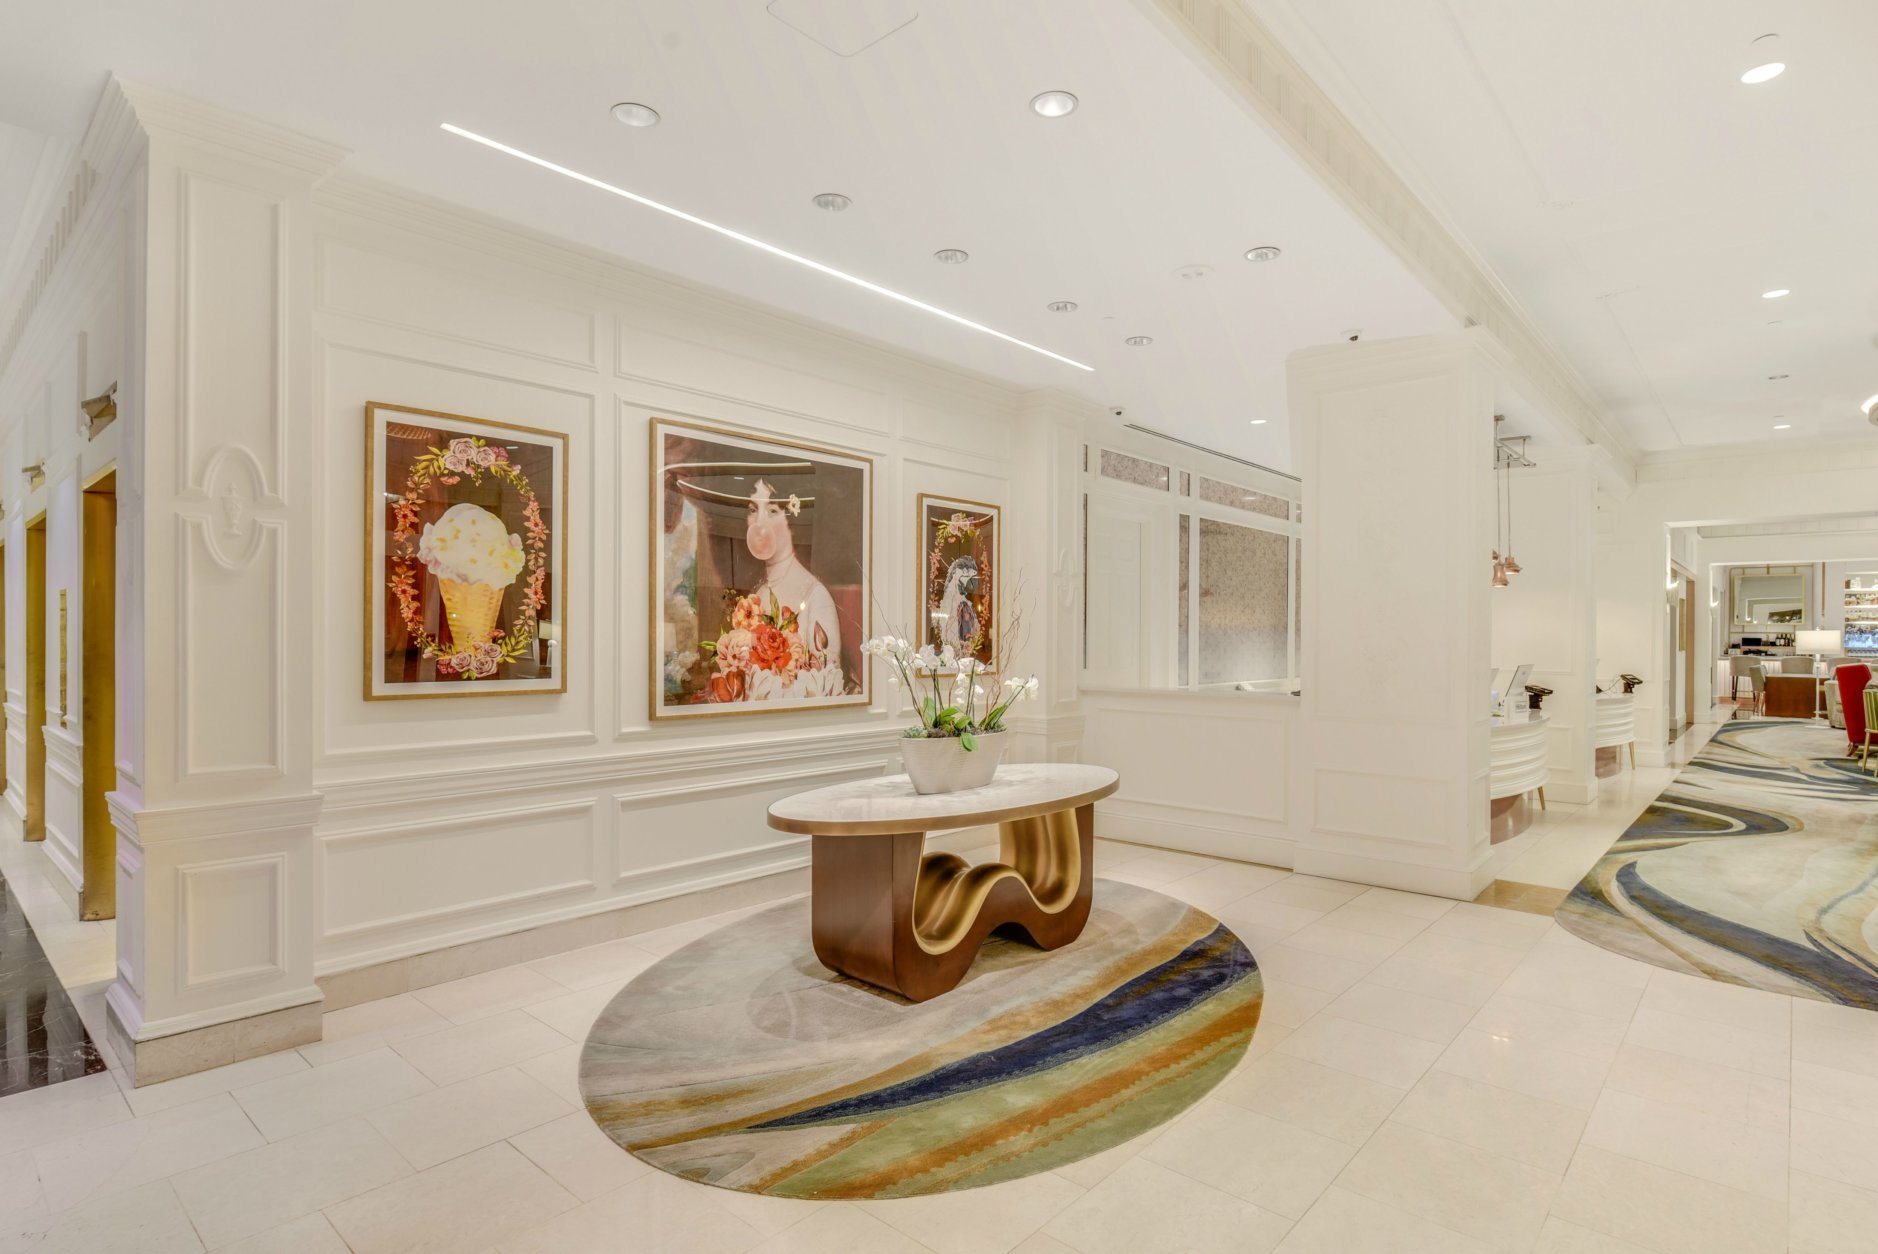 Interior designer The Gettys Group included some subtile nods to Dolly Madison in the design, including a feature wall that mirrors the crackling of a painting. (Courtesy Hilton Hotels)